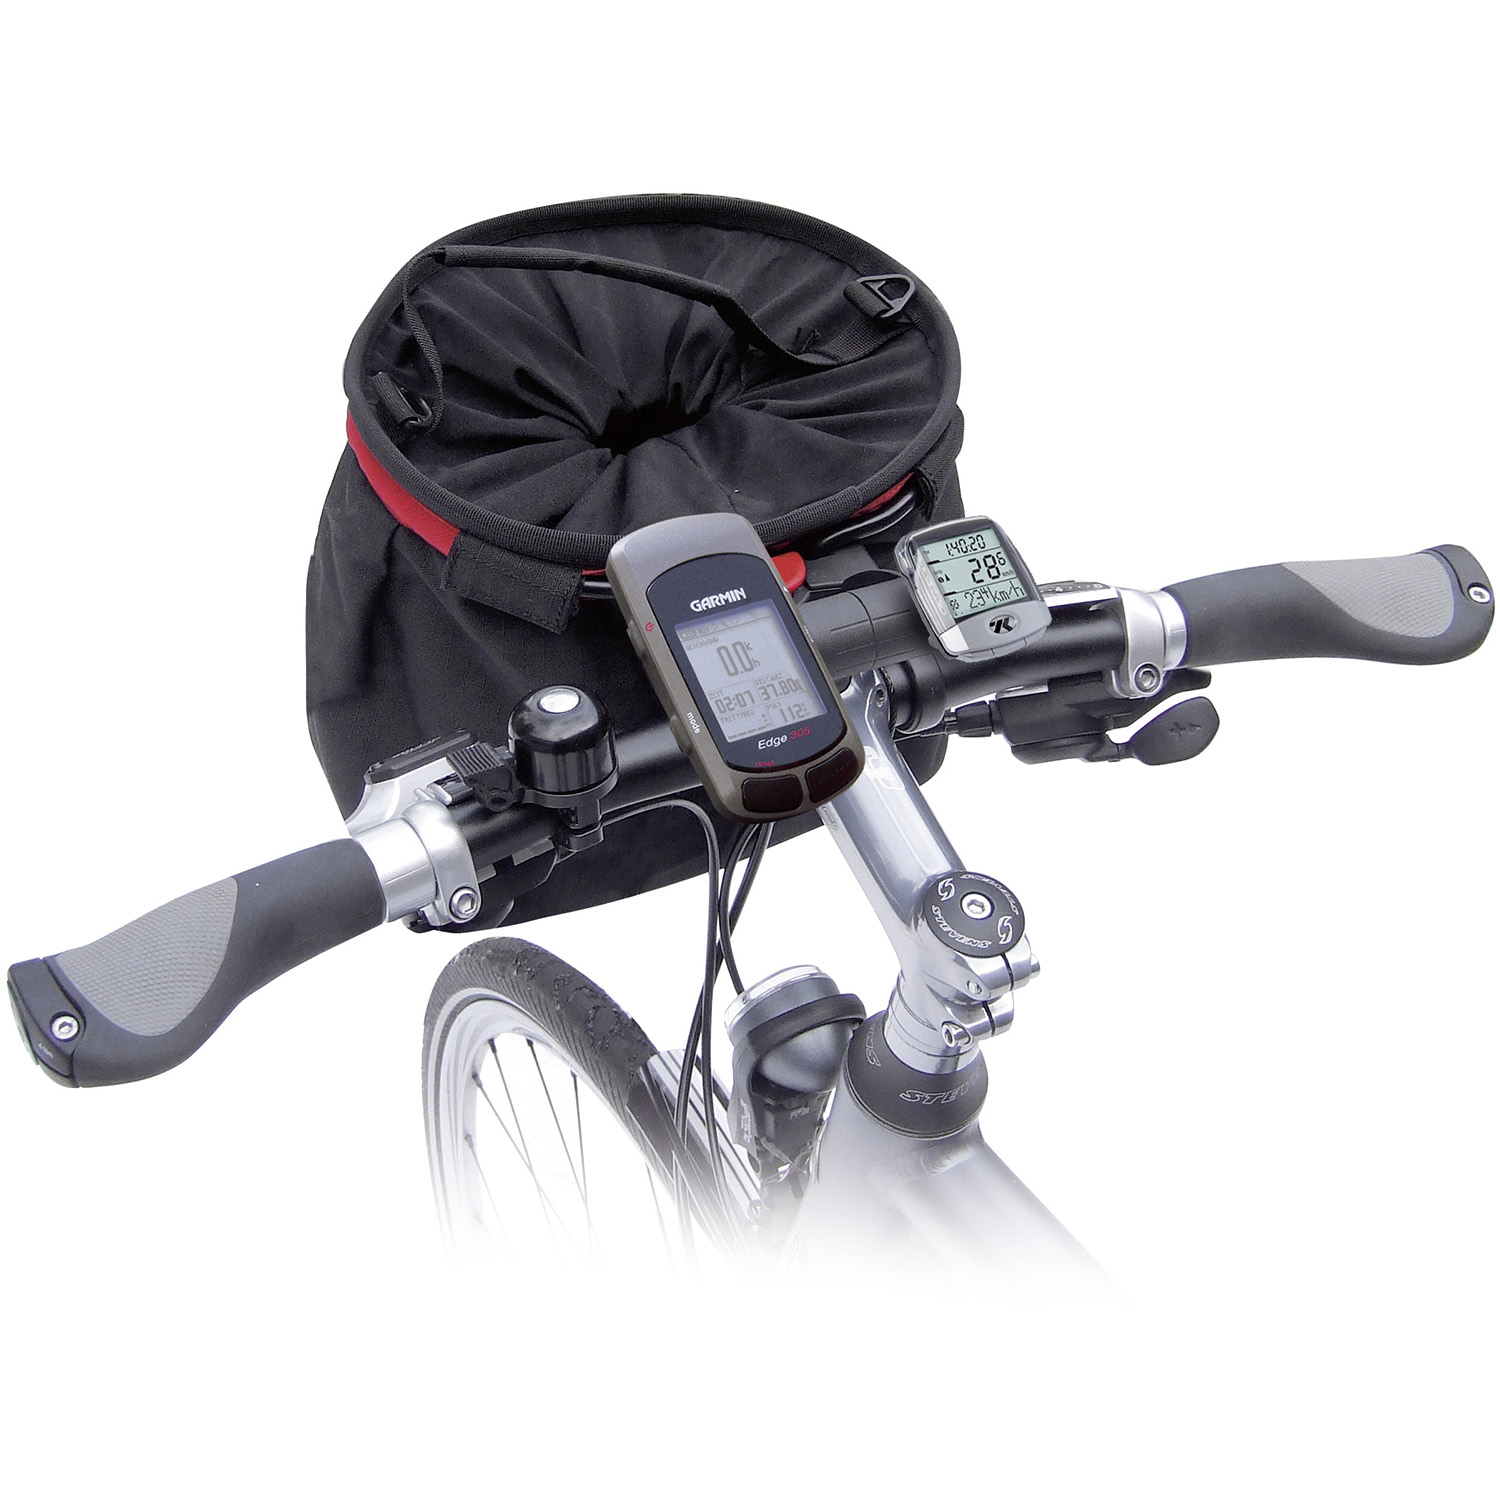 MultiClip Plus, more space on handlebar, combinable with Handlebar Adapter